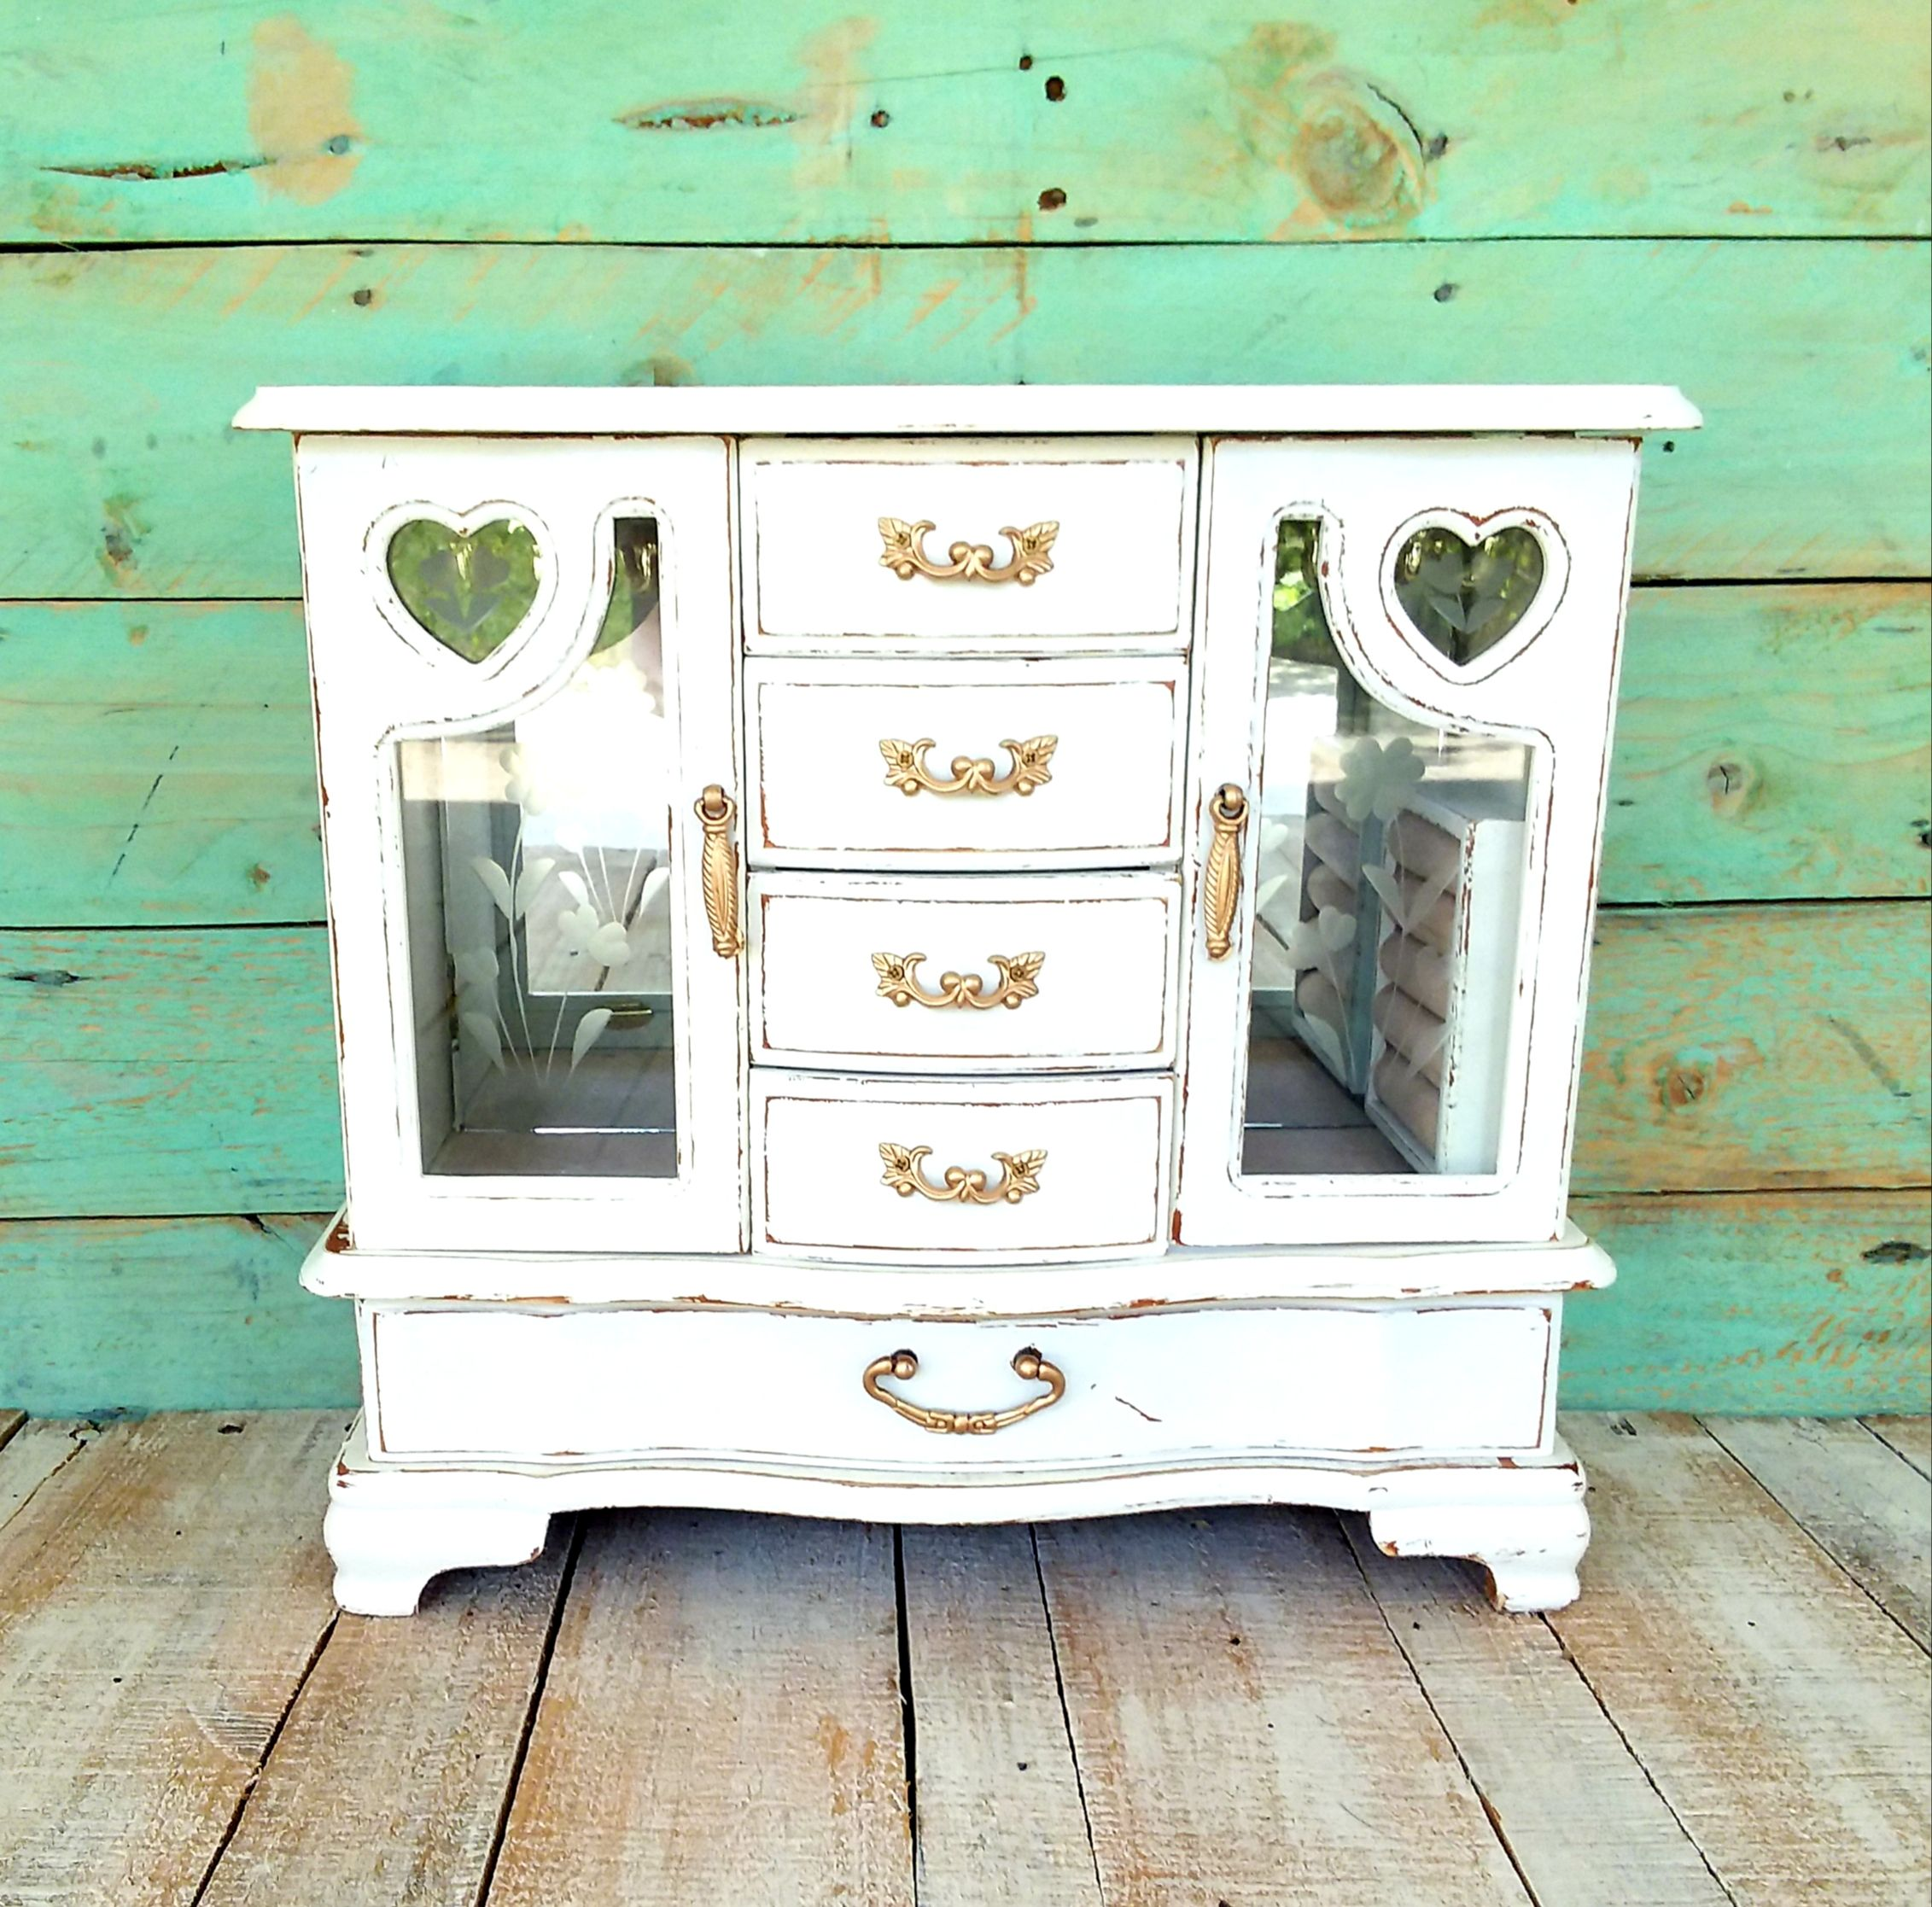 storage refinished jewelry organizer distressed rustic Upcycled mans white dresser caddy  vintage upcycled jewelry box  shabby chic